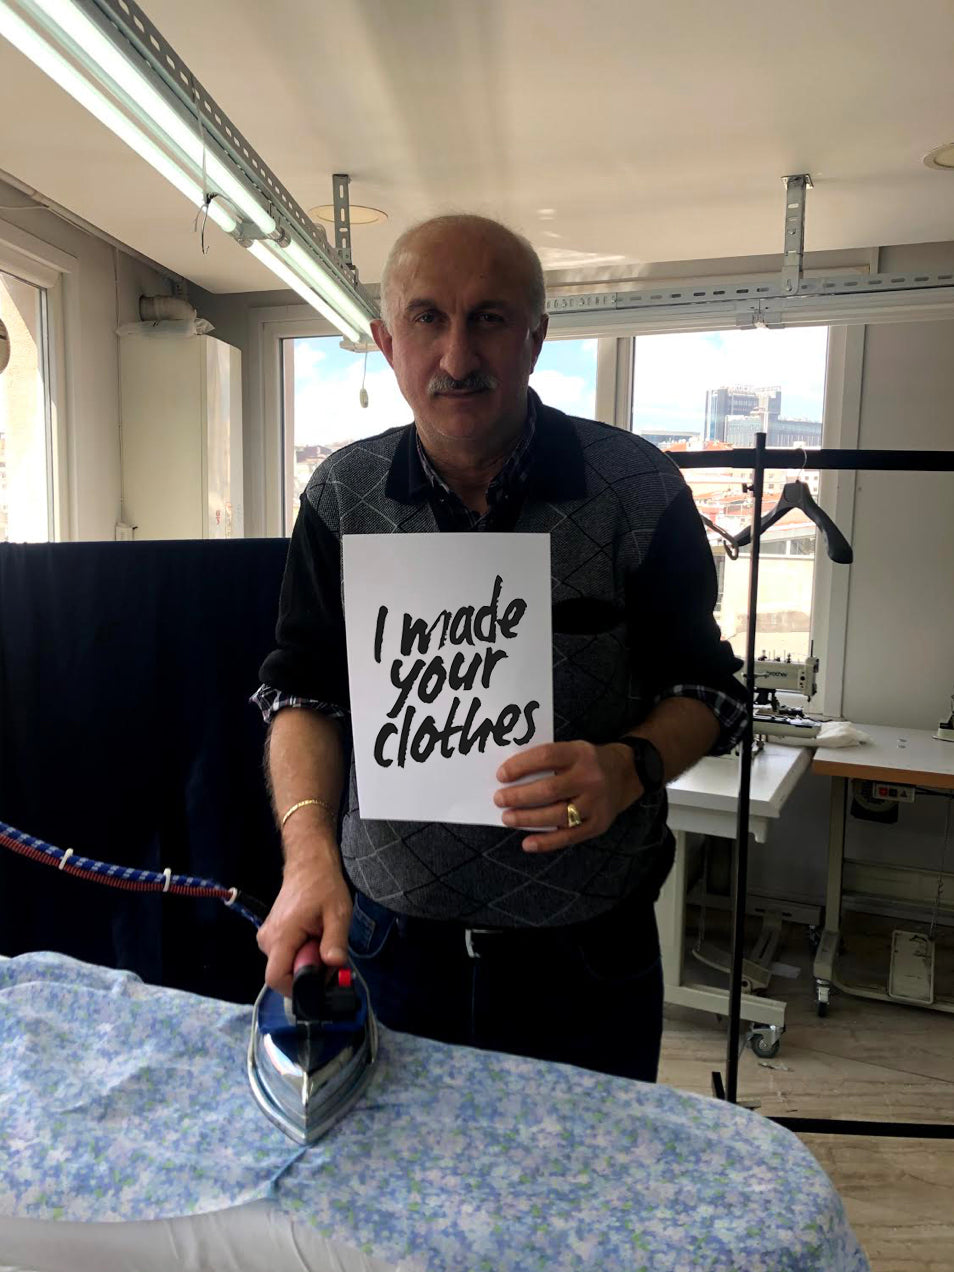 clothing factory, male worker holding fashion revolution sign